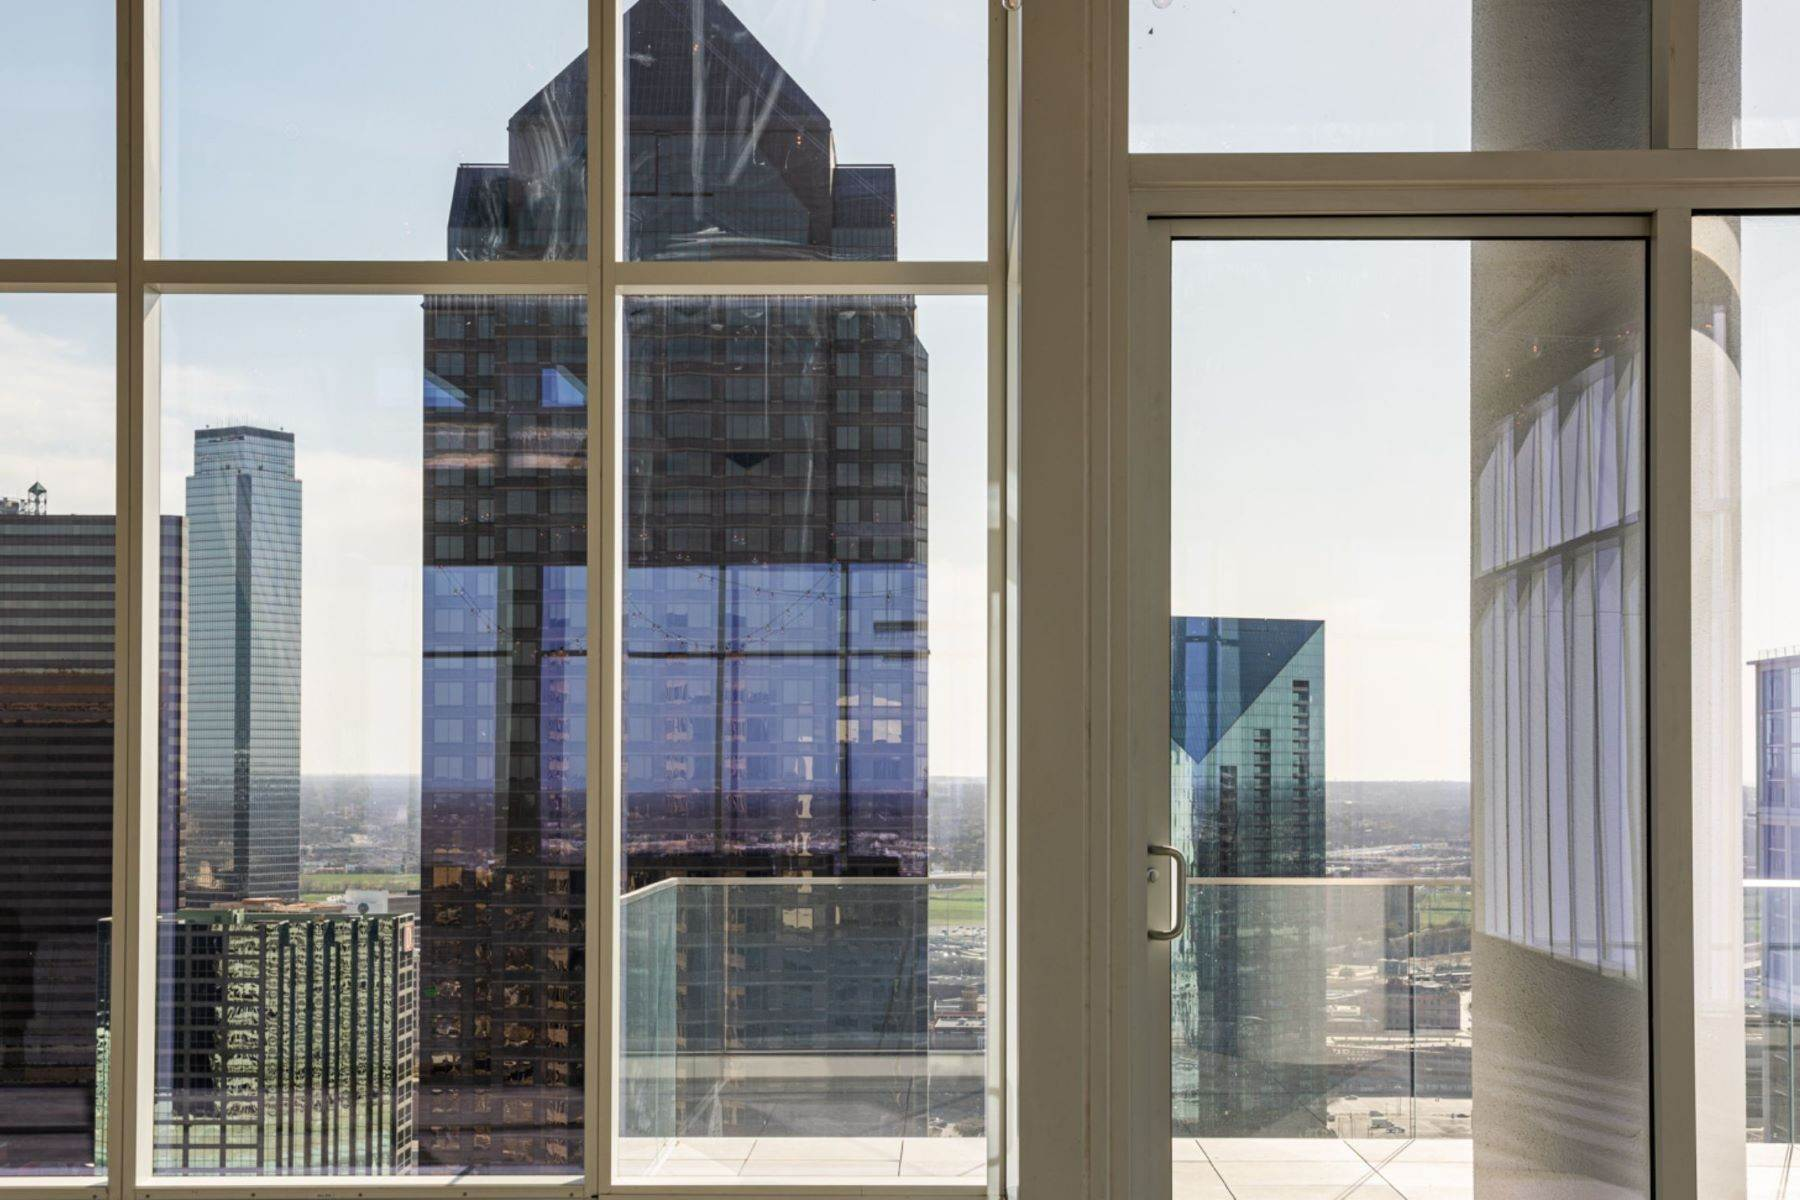 4. Condominiums for Sale at HALL Arts Residences 1747 Leonard Street, #2701 Dallas, Texas 75201 United States